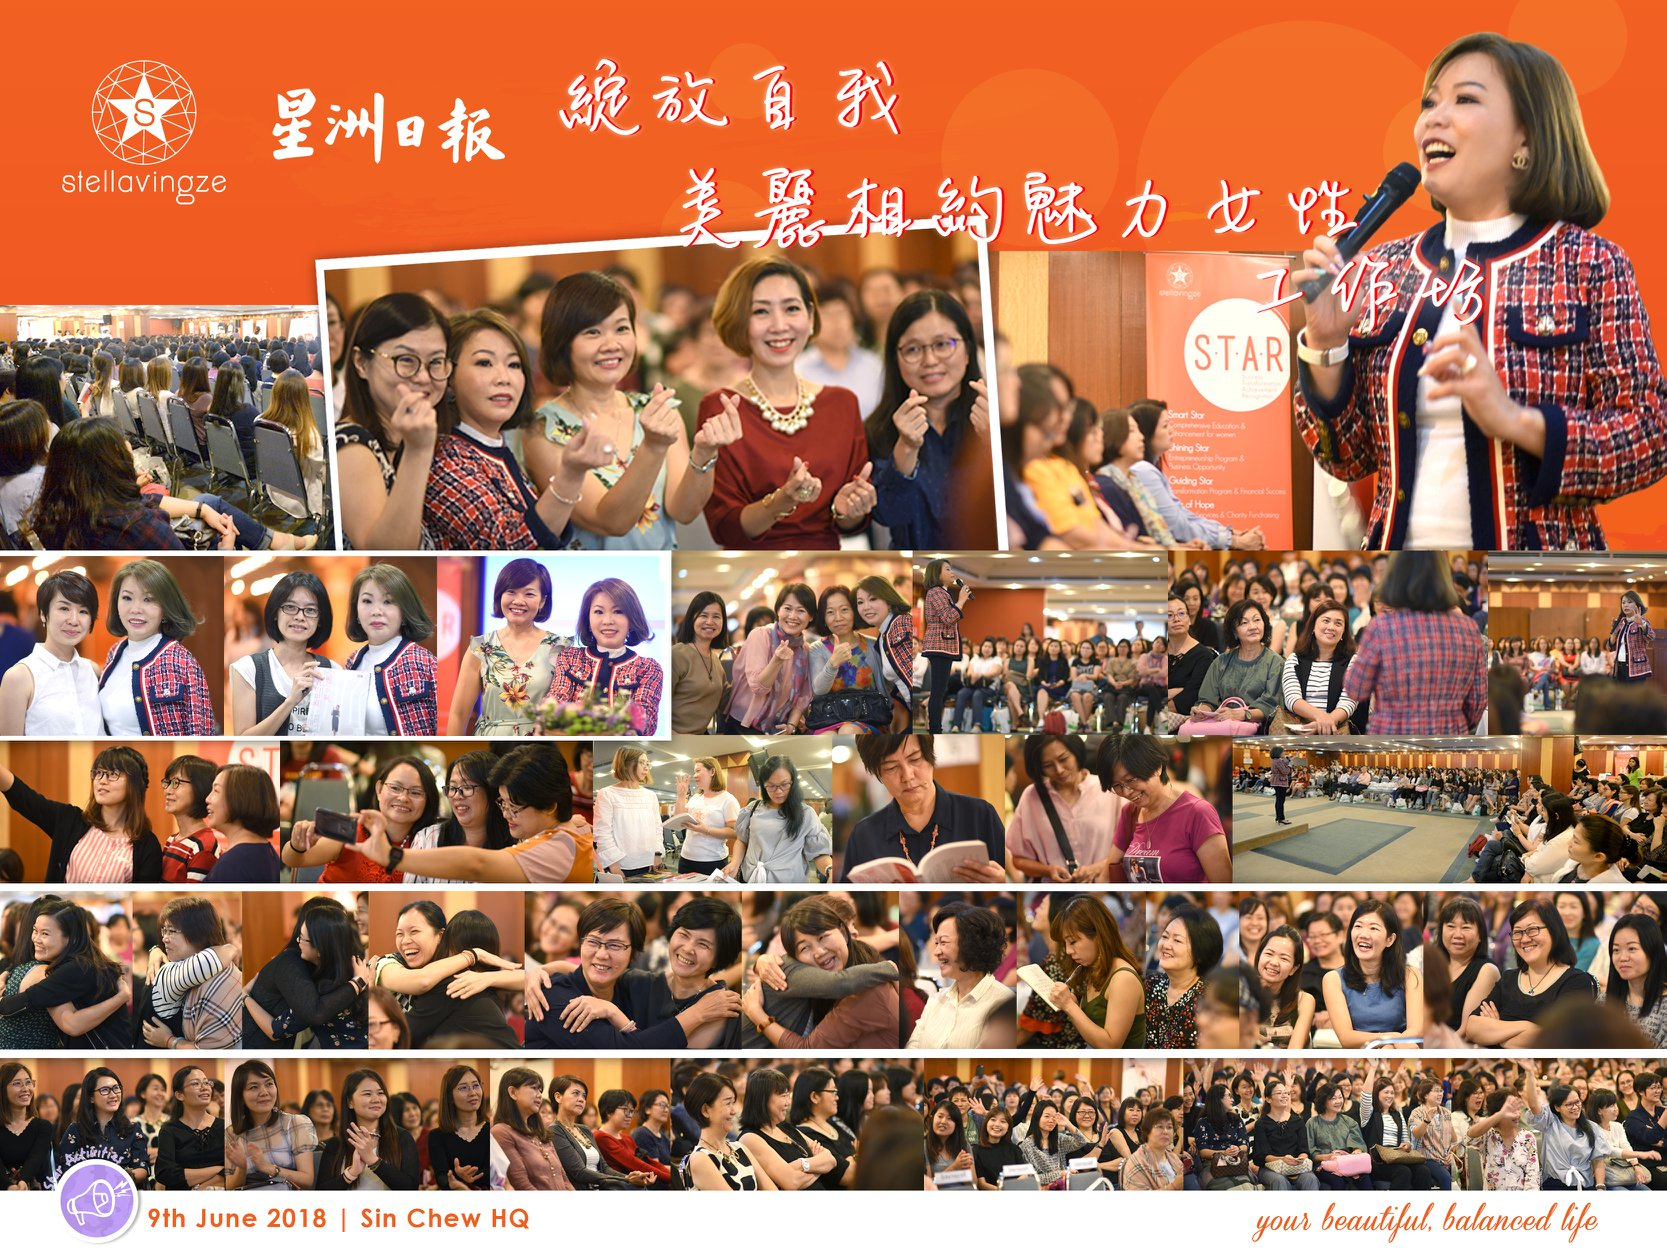 Success is not a Destination, but a Journey. It comes after numerous failures and challenges. Face it and overcome all obstacles with Truthfulness, Beauty and Kindness, you will shin bright like a diamond and star too!  Be a StarLadies and achieve your beautiful, balanced life in accordance to your life clock!   #StellavinzgeInternational  #SinChew  #SinChewDaily  #StarLadies  #BeautifulBalancedLife